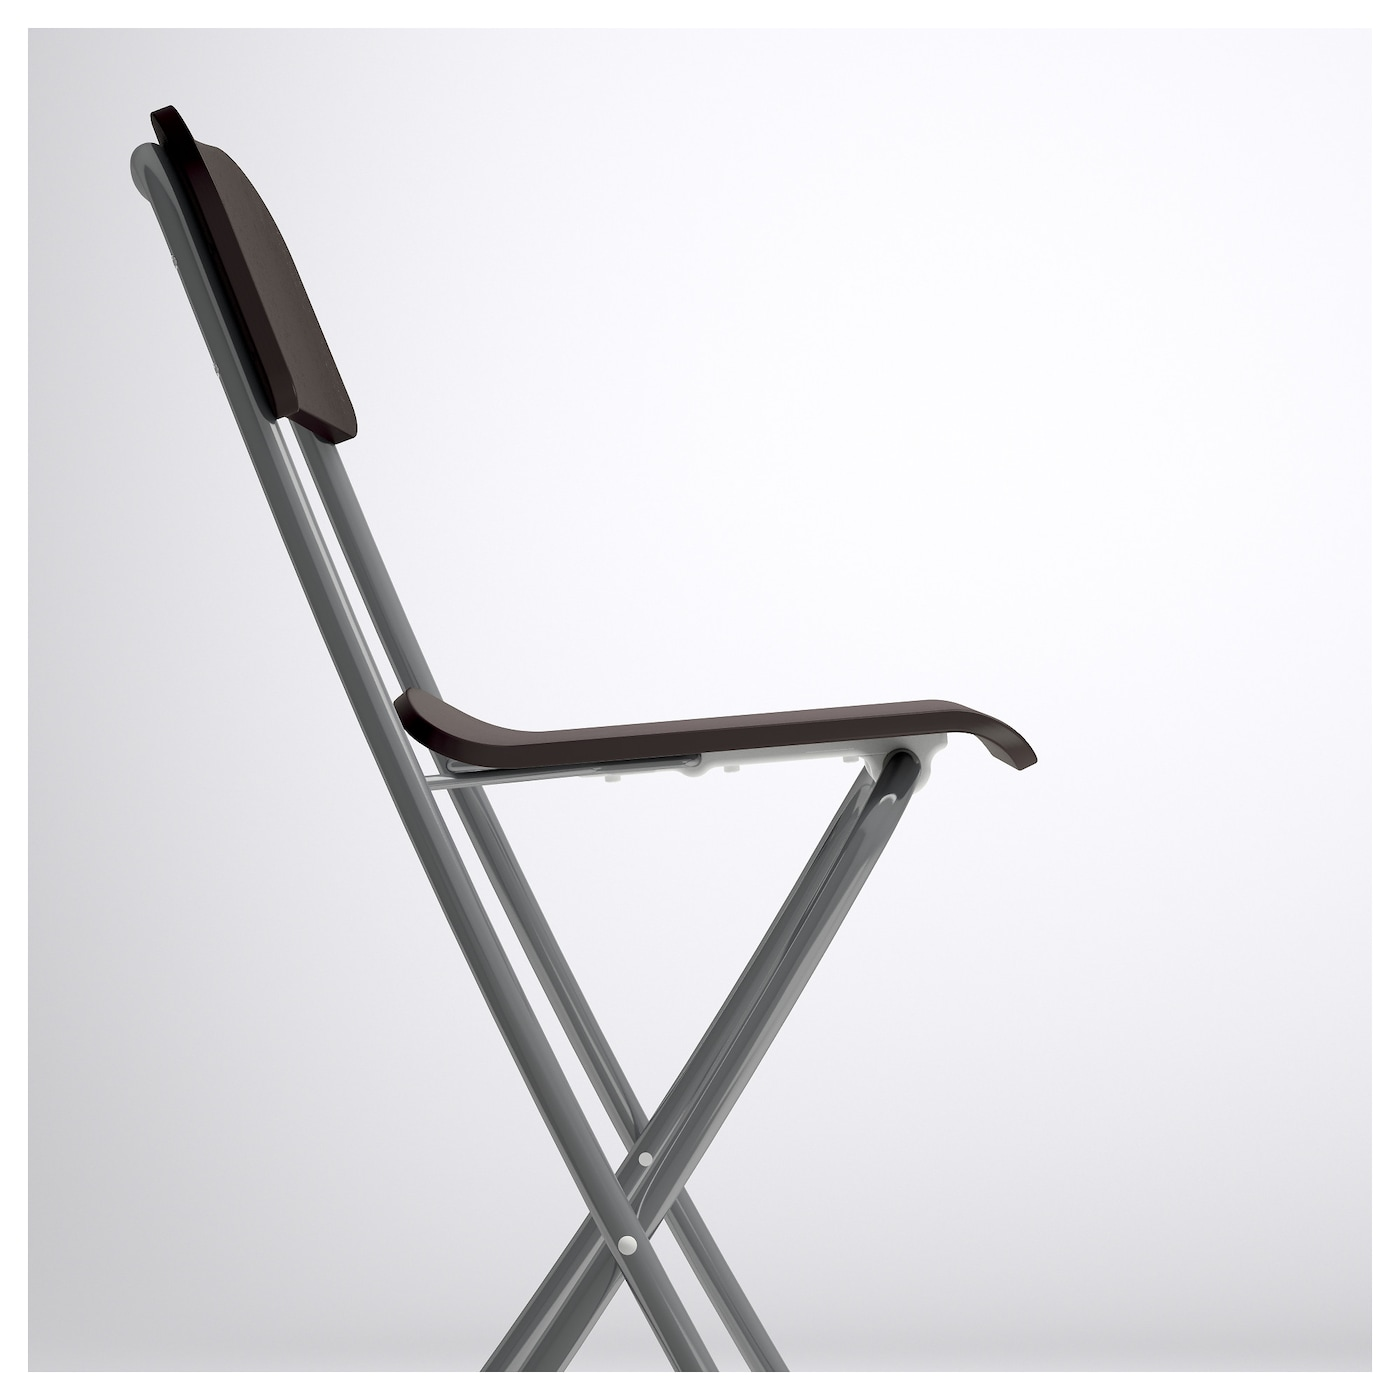 FRANKLIN Bar stool with backrest foldable Brown black silver